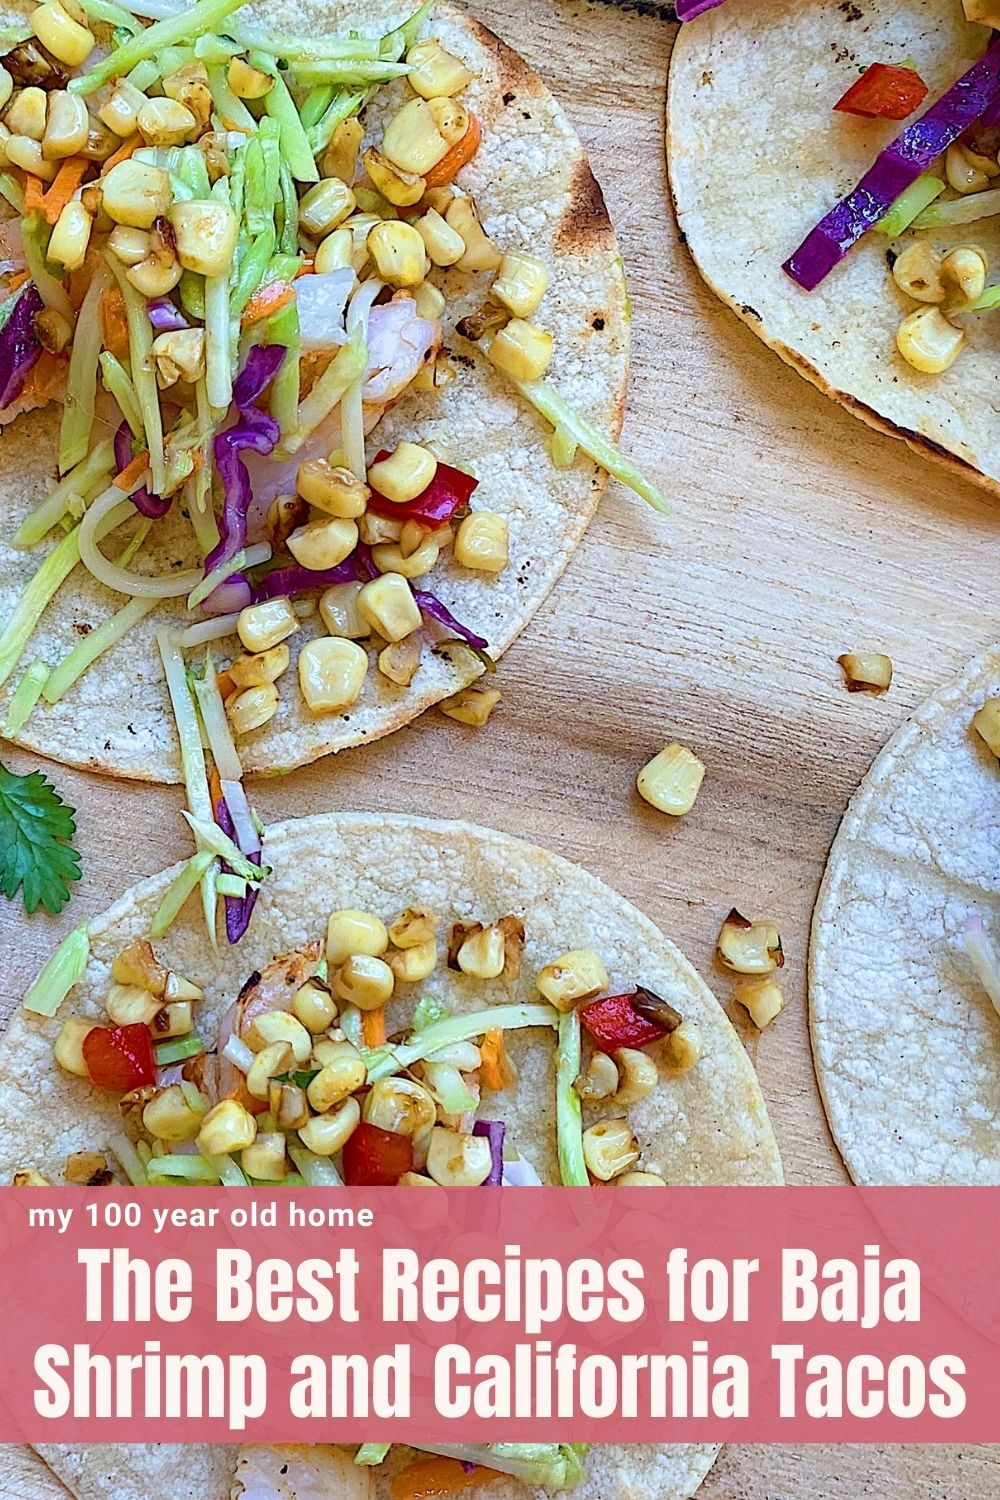 I love tacos. All Types of tacos.Today and am so excited to share with you the best Baja and California tacos recipes!